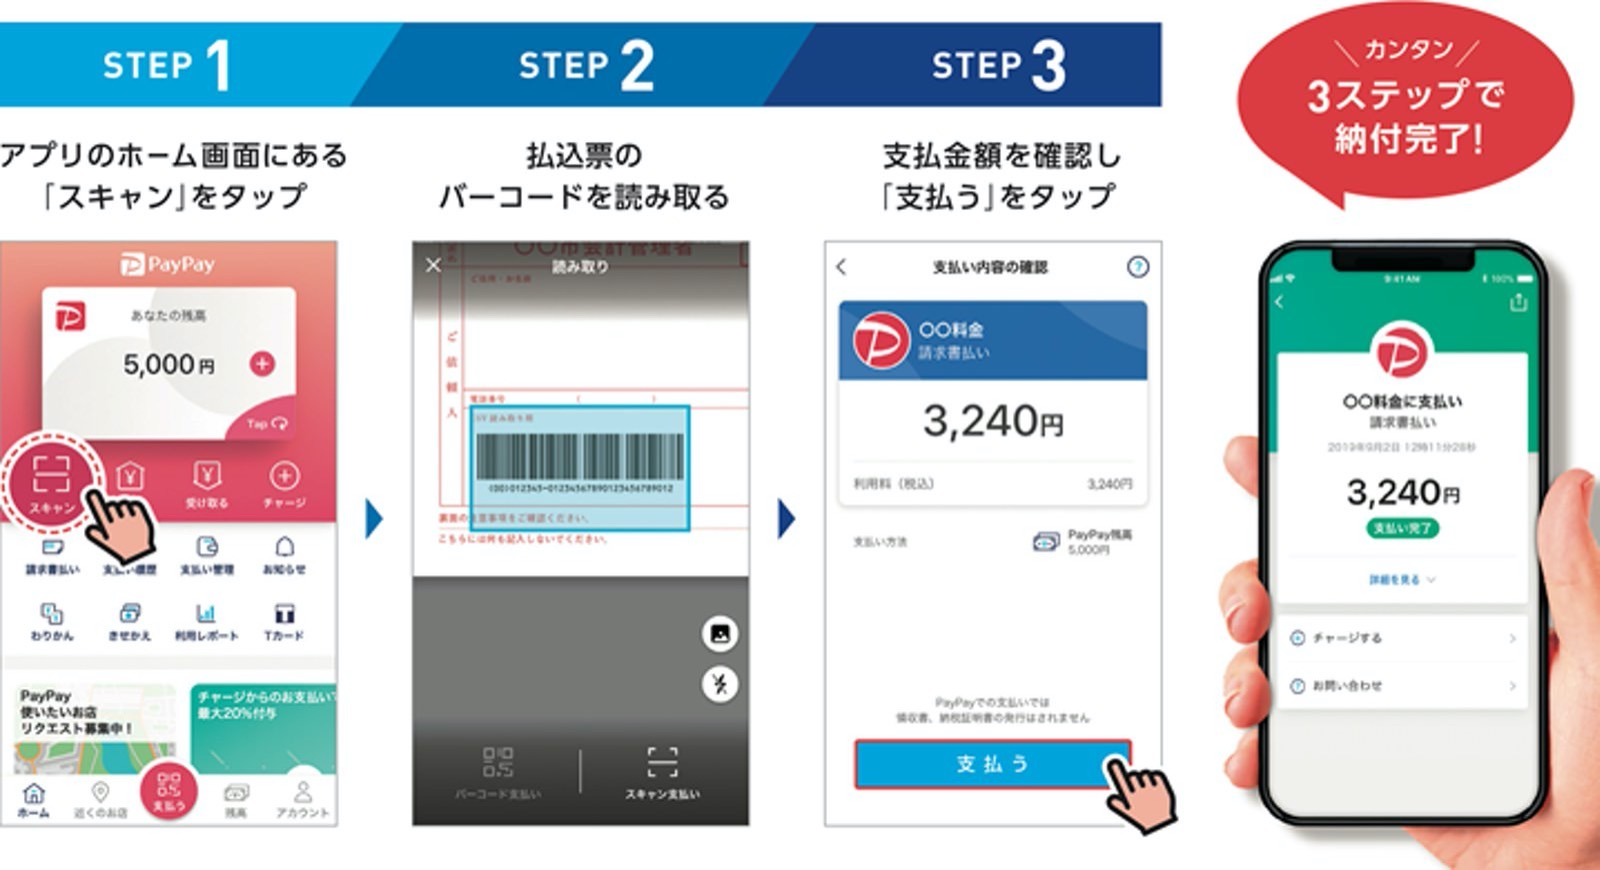 Nhk how to use paypay